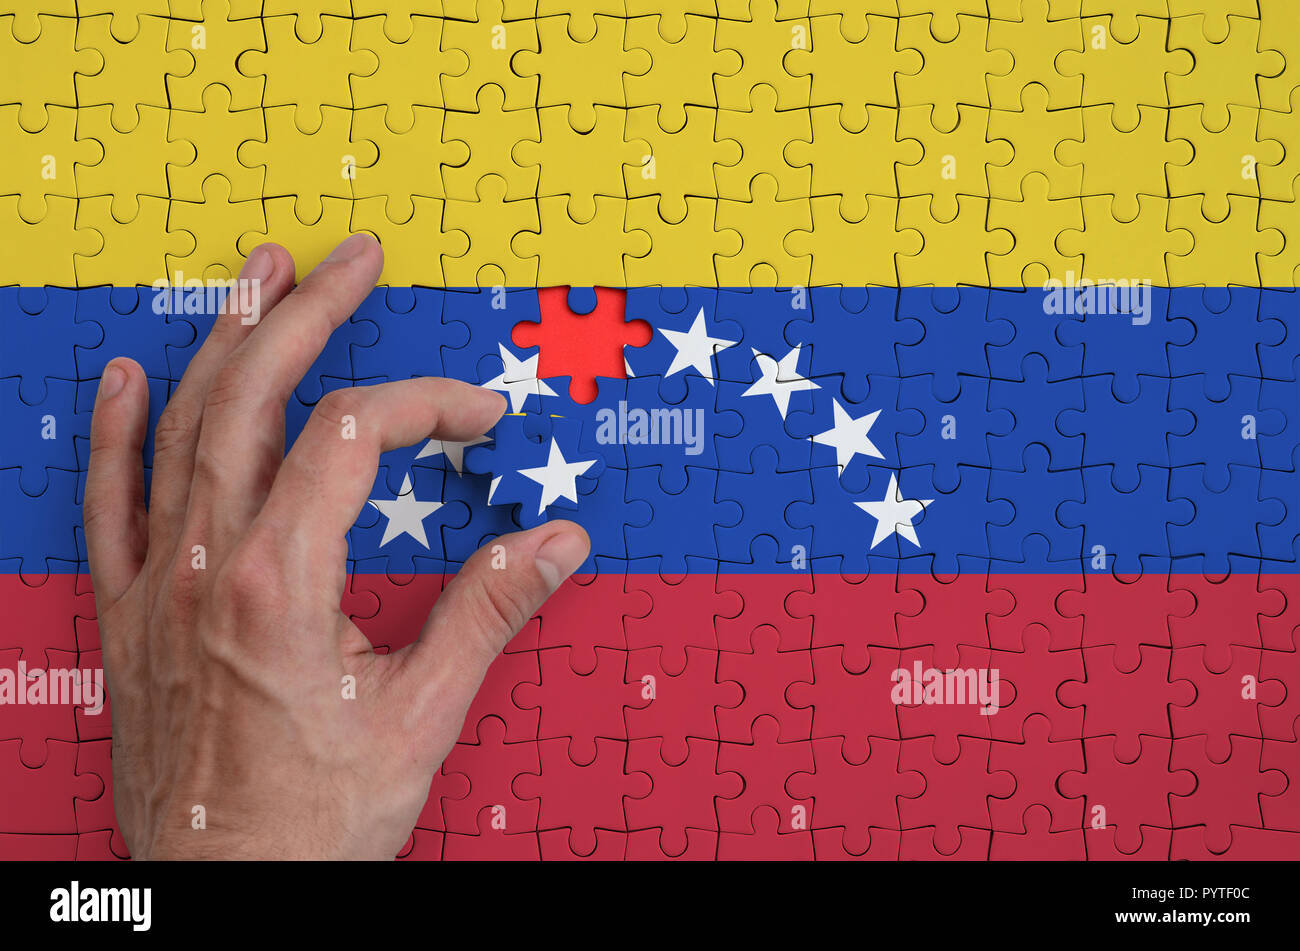 Venezuela flag  is depicted on a puzzle, which the man's hand completes to fold. - Stock Image